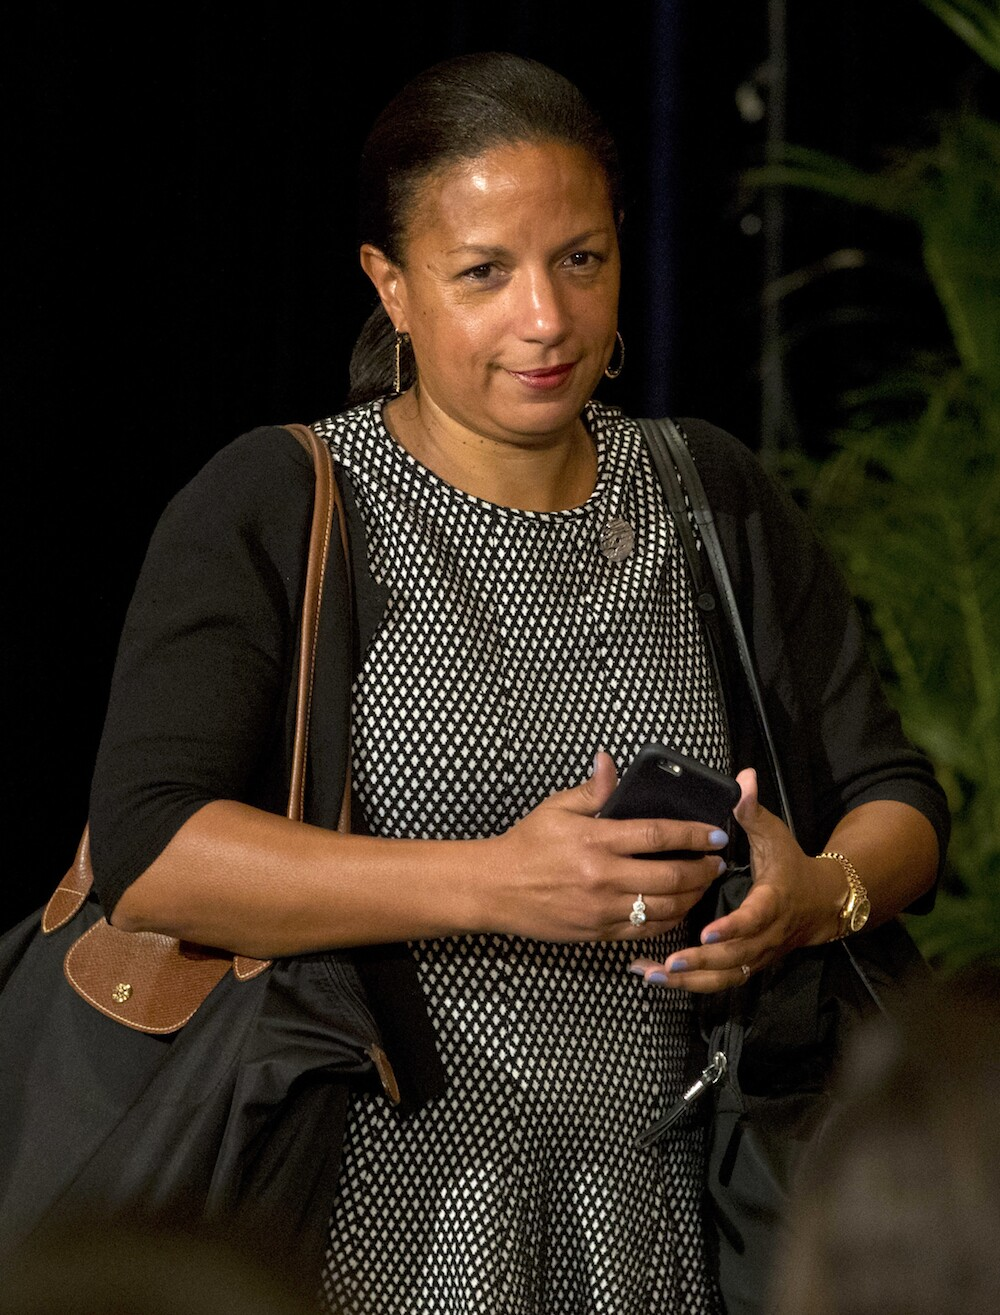 CNN's Discrediting Refusal to Cover the Susan Rice Story